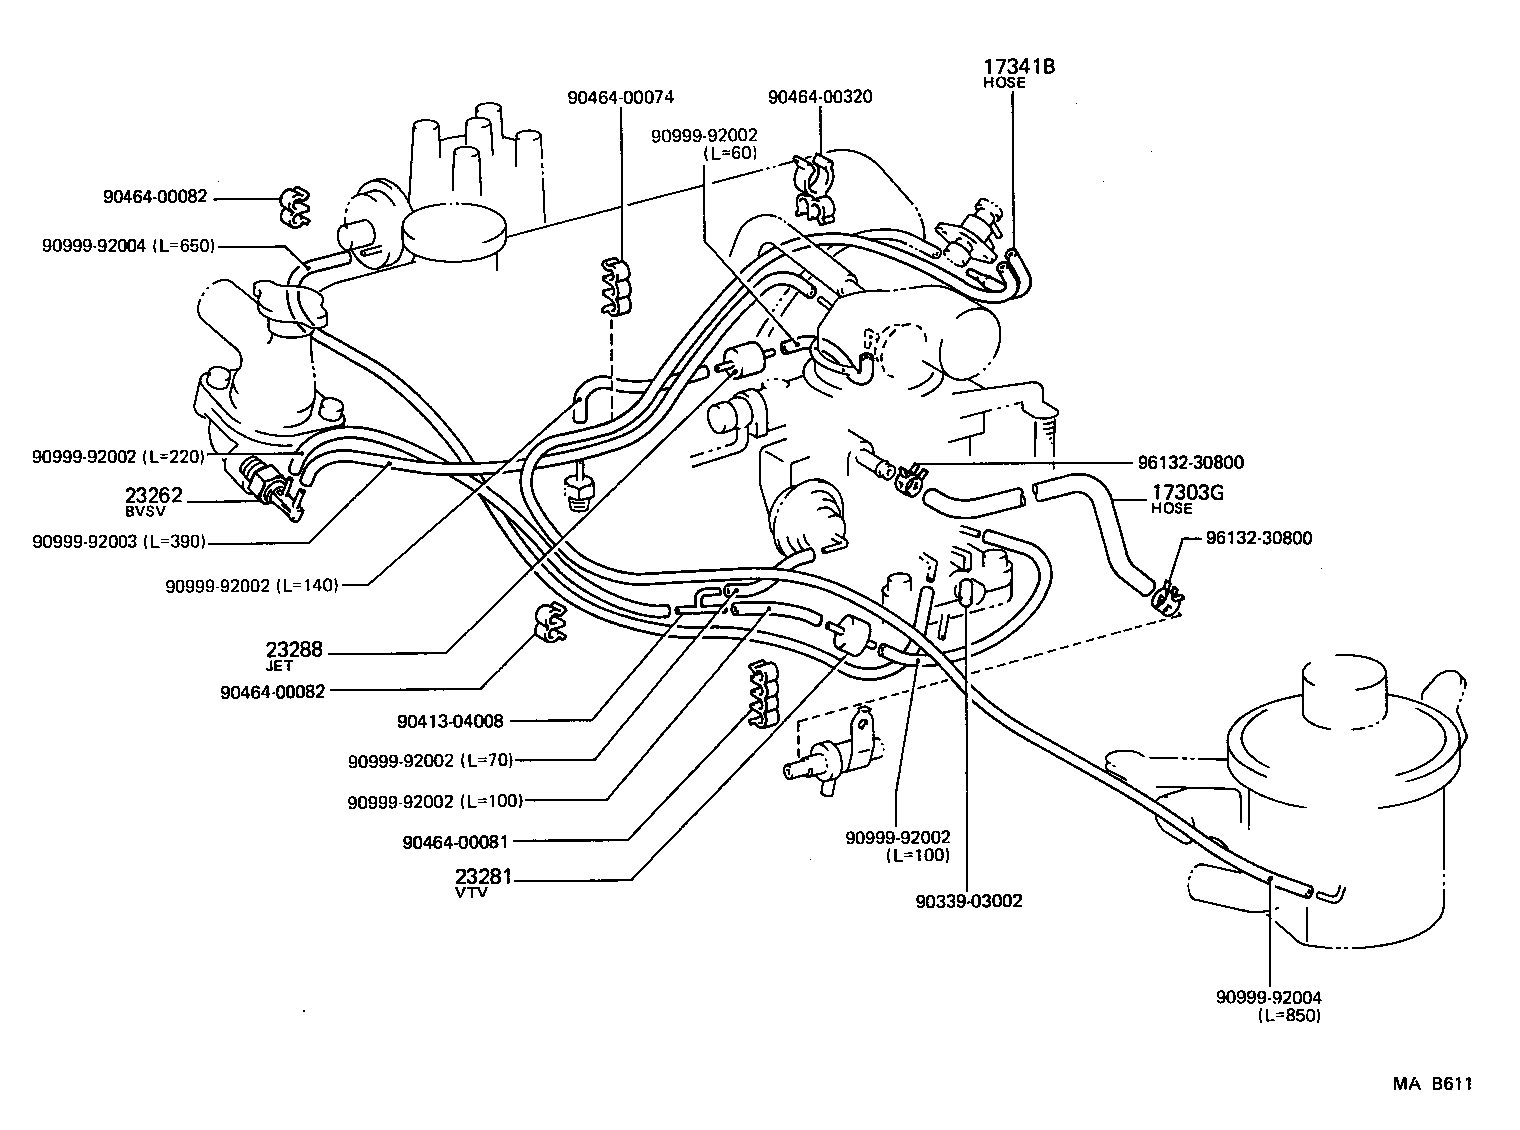 Toyota 5k Engine Diagram Toyota 5k Engine Manual Wiring Download App